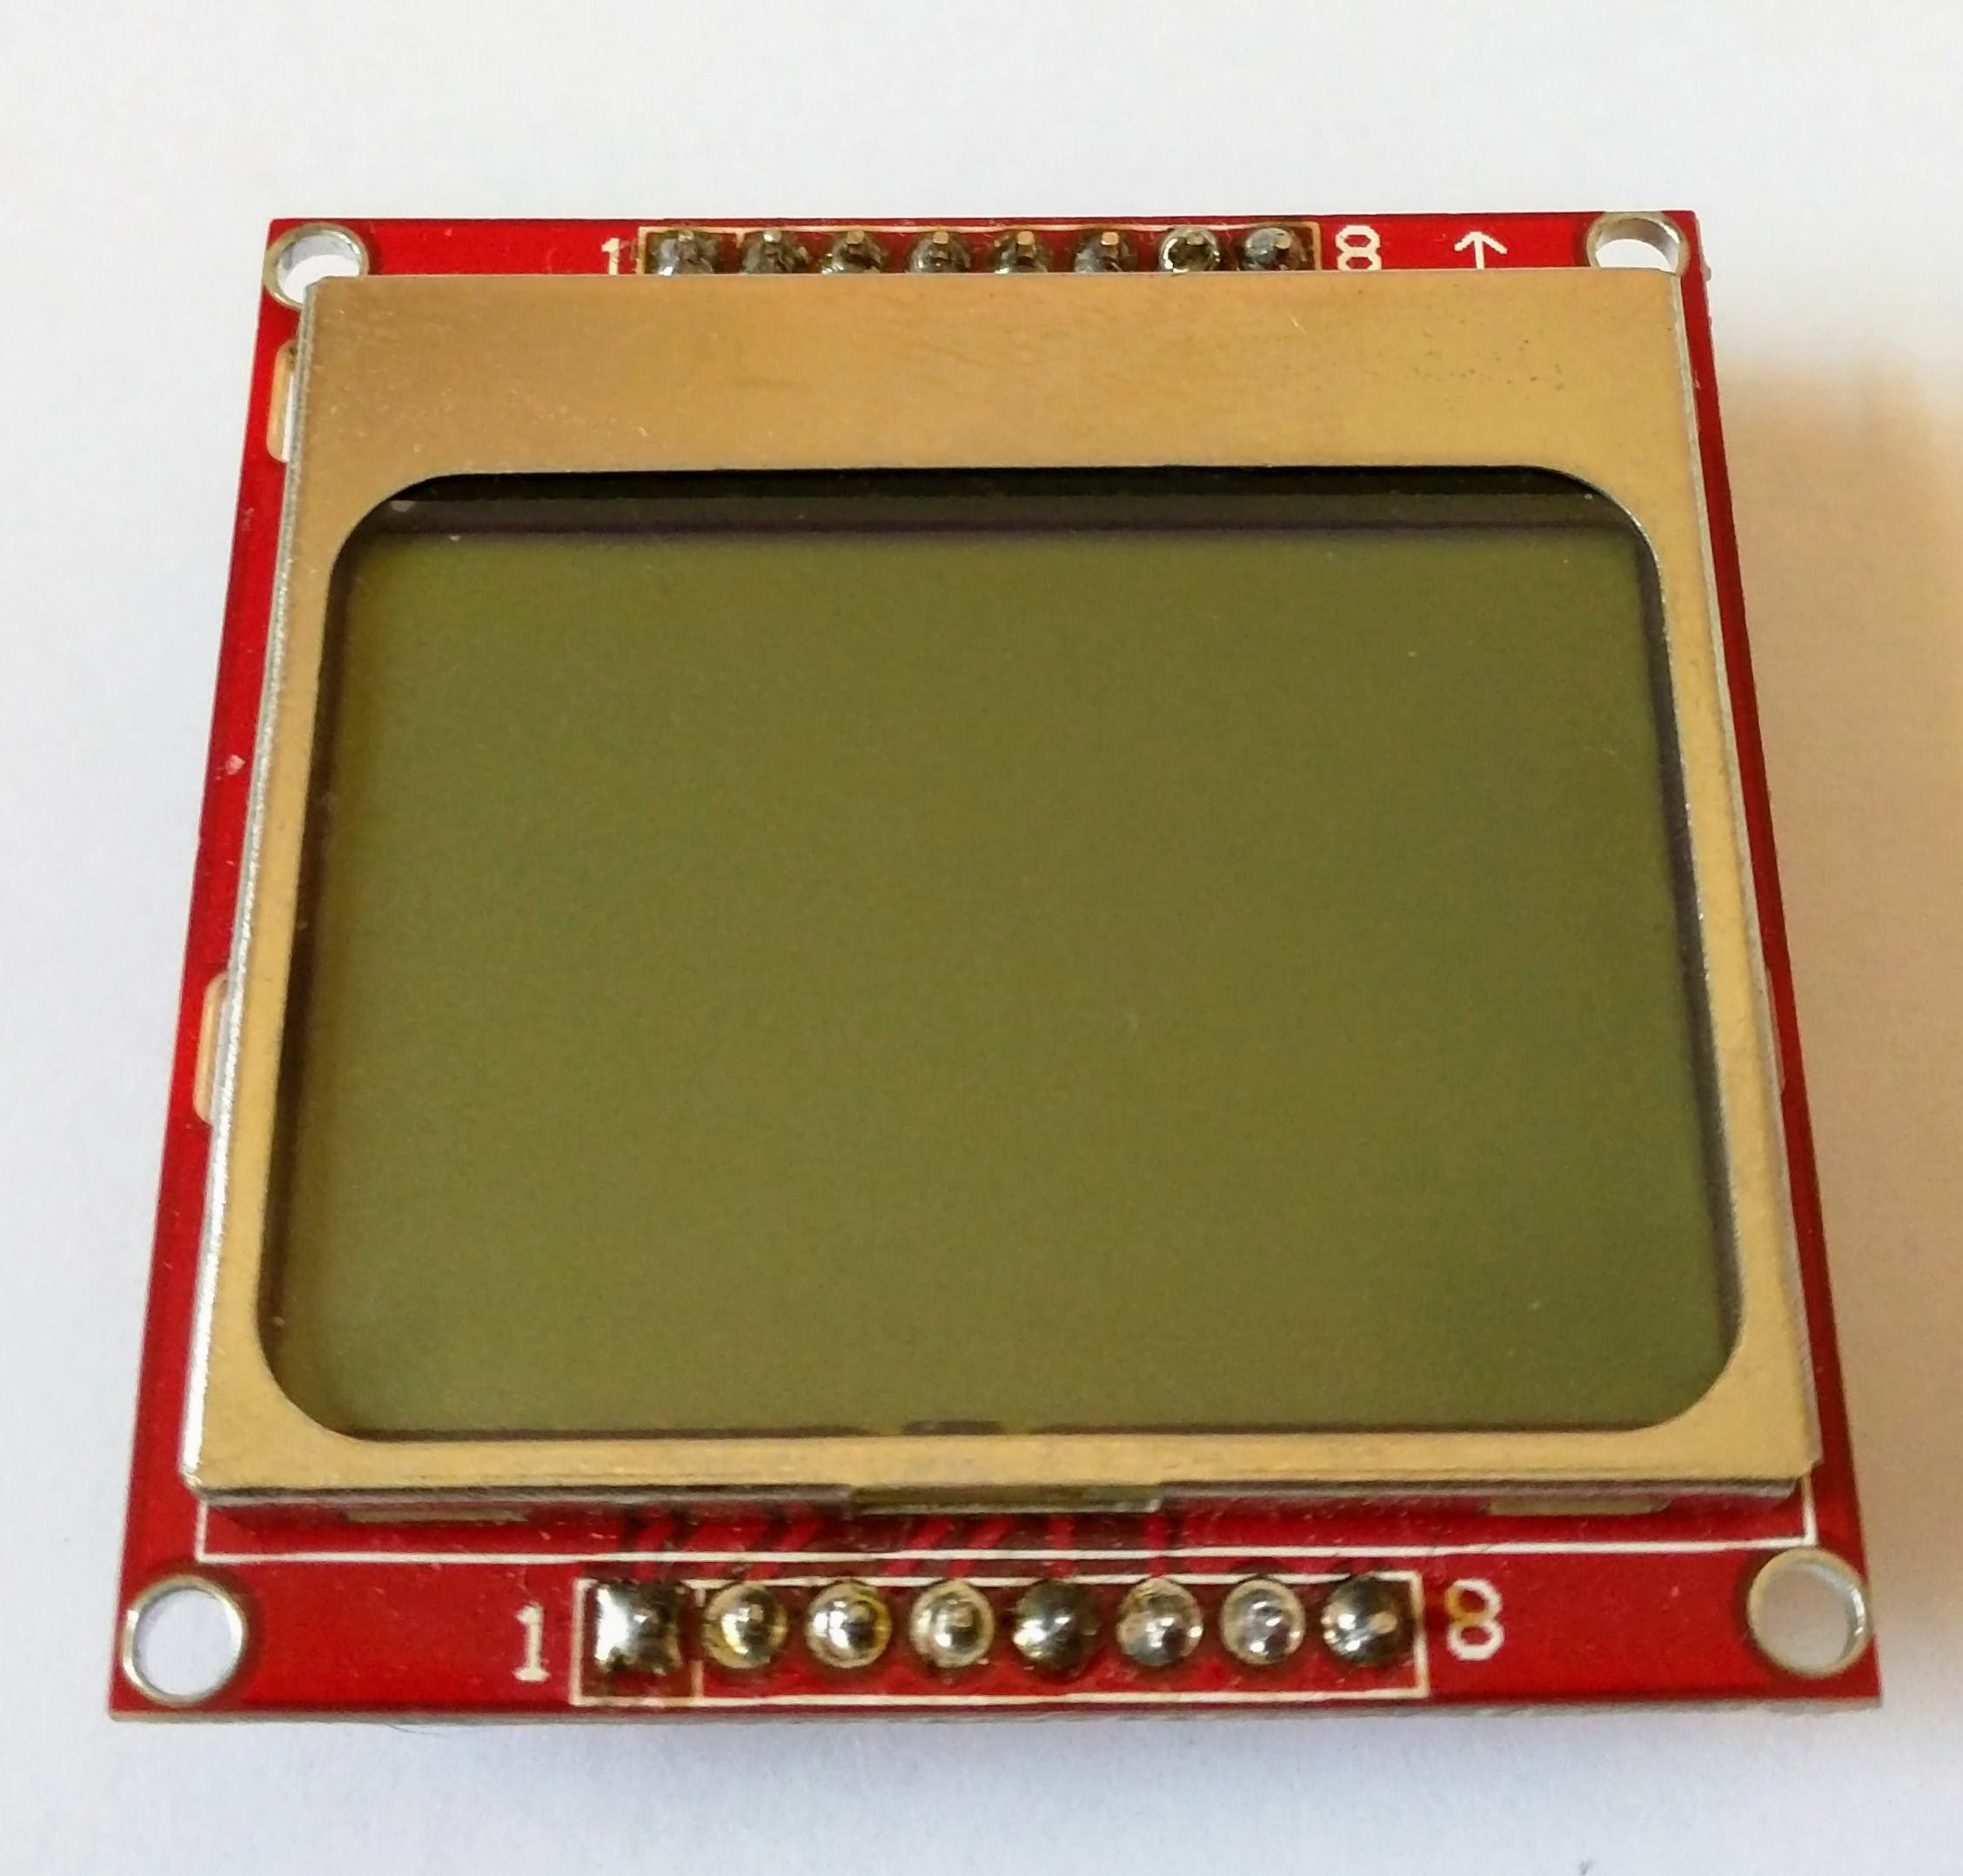 Nokia 5110 display front